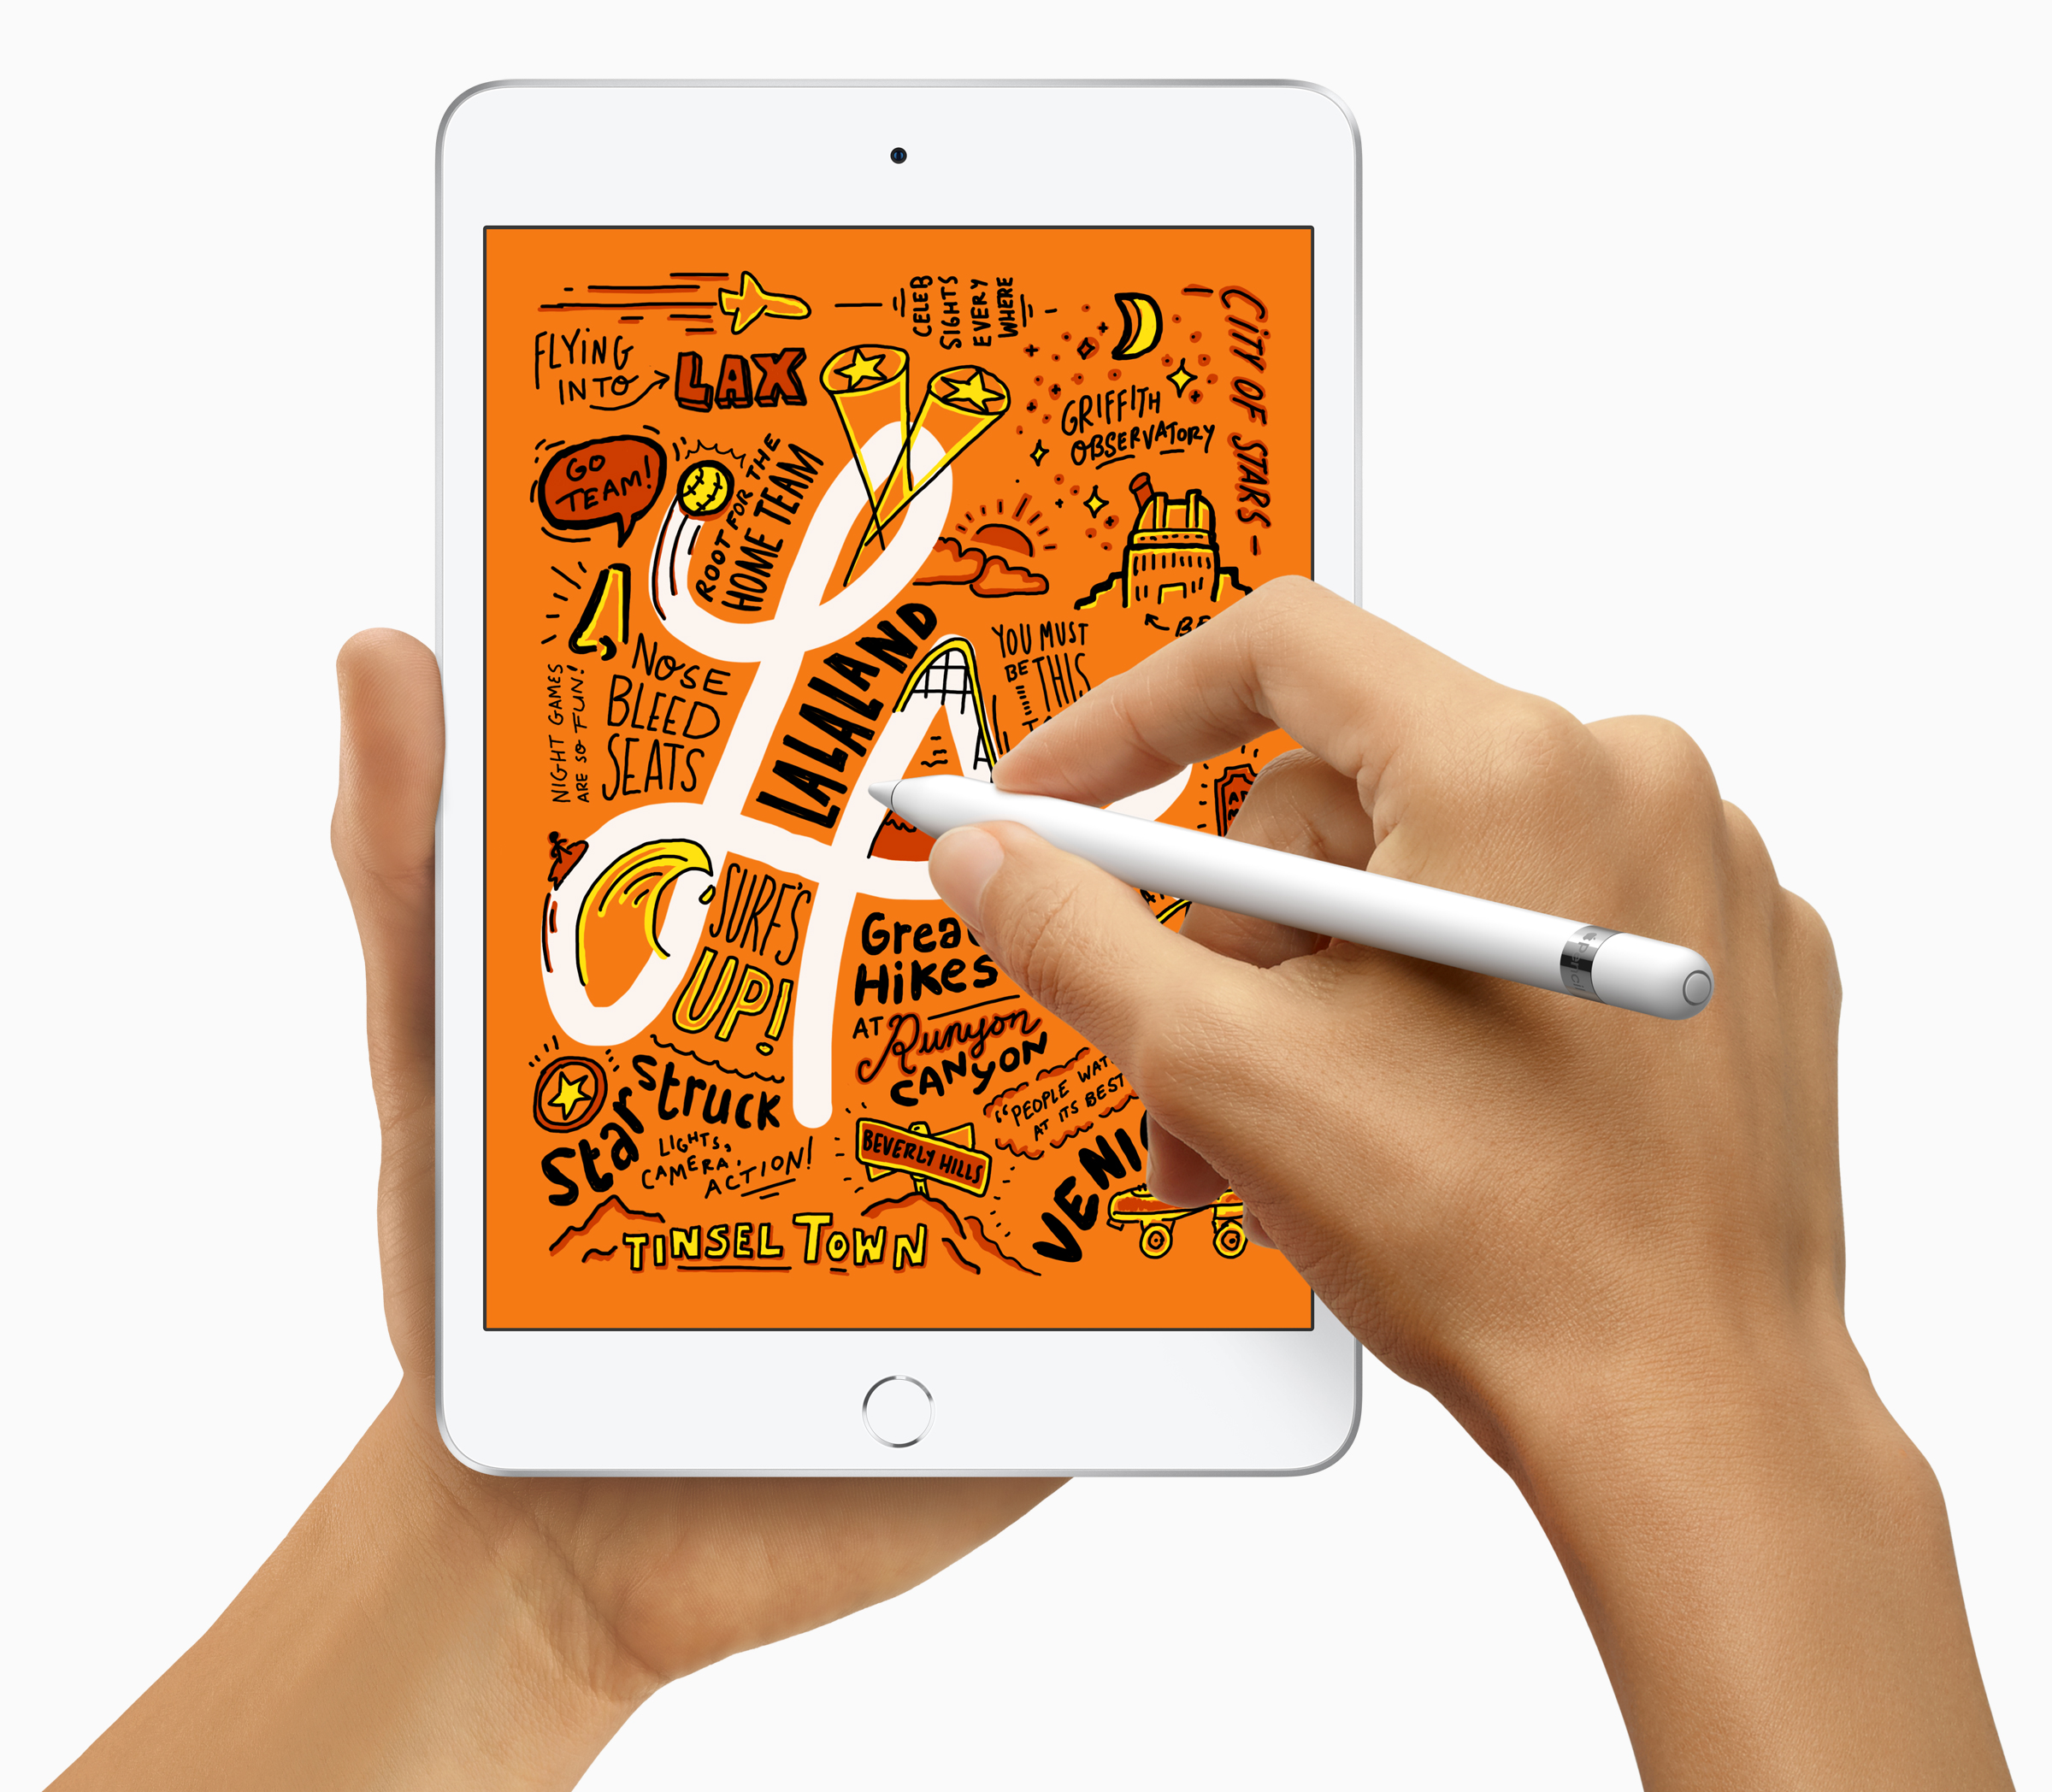 Apple Announces New $499 iPad Air With A12 Bionic Chip, 5th-Gen iPad mini, Both With Apple Pencil Support